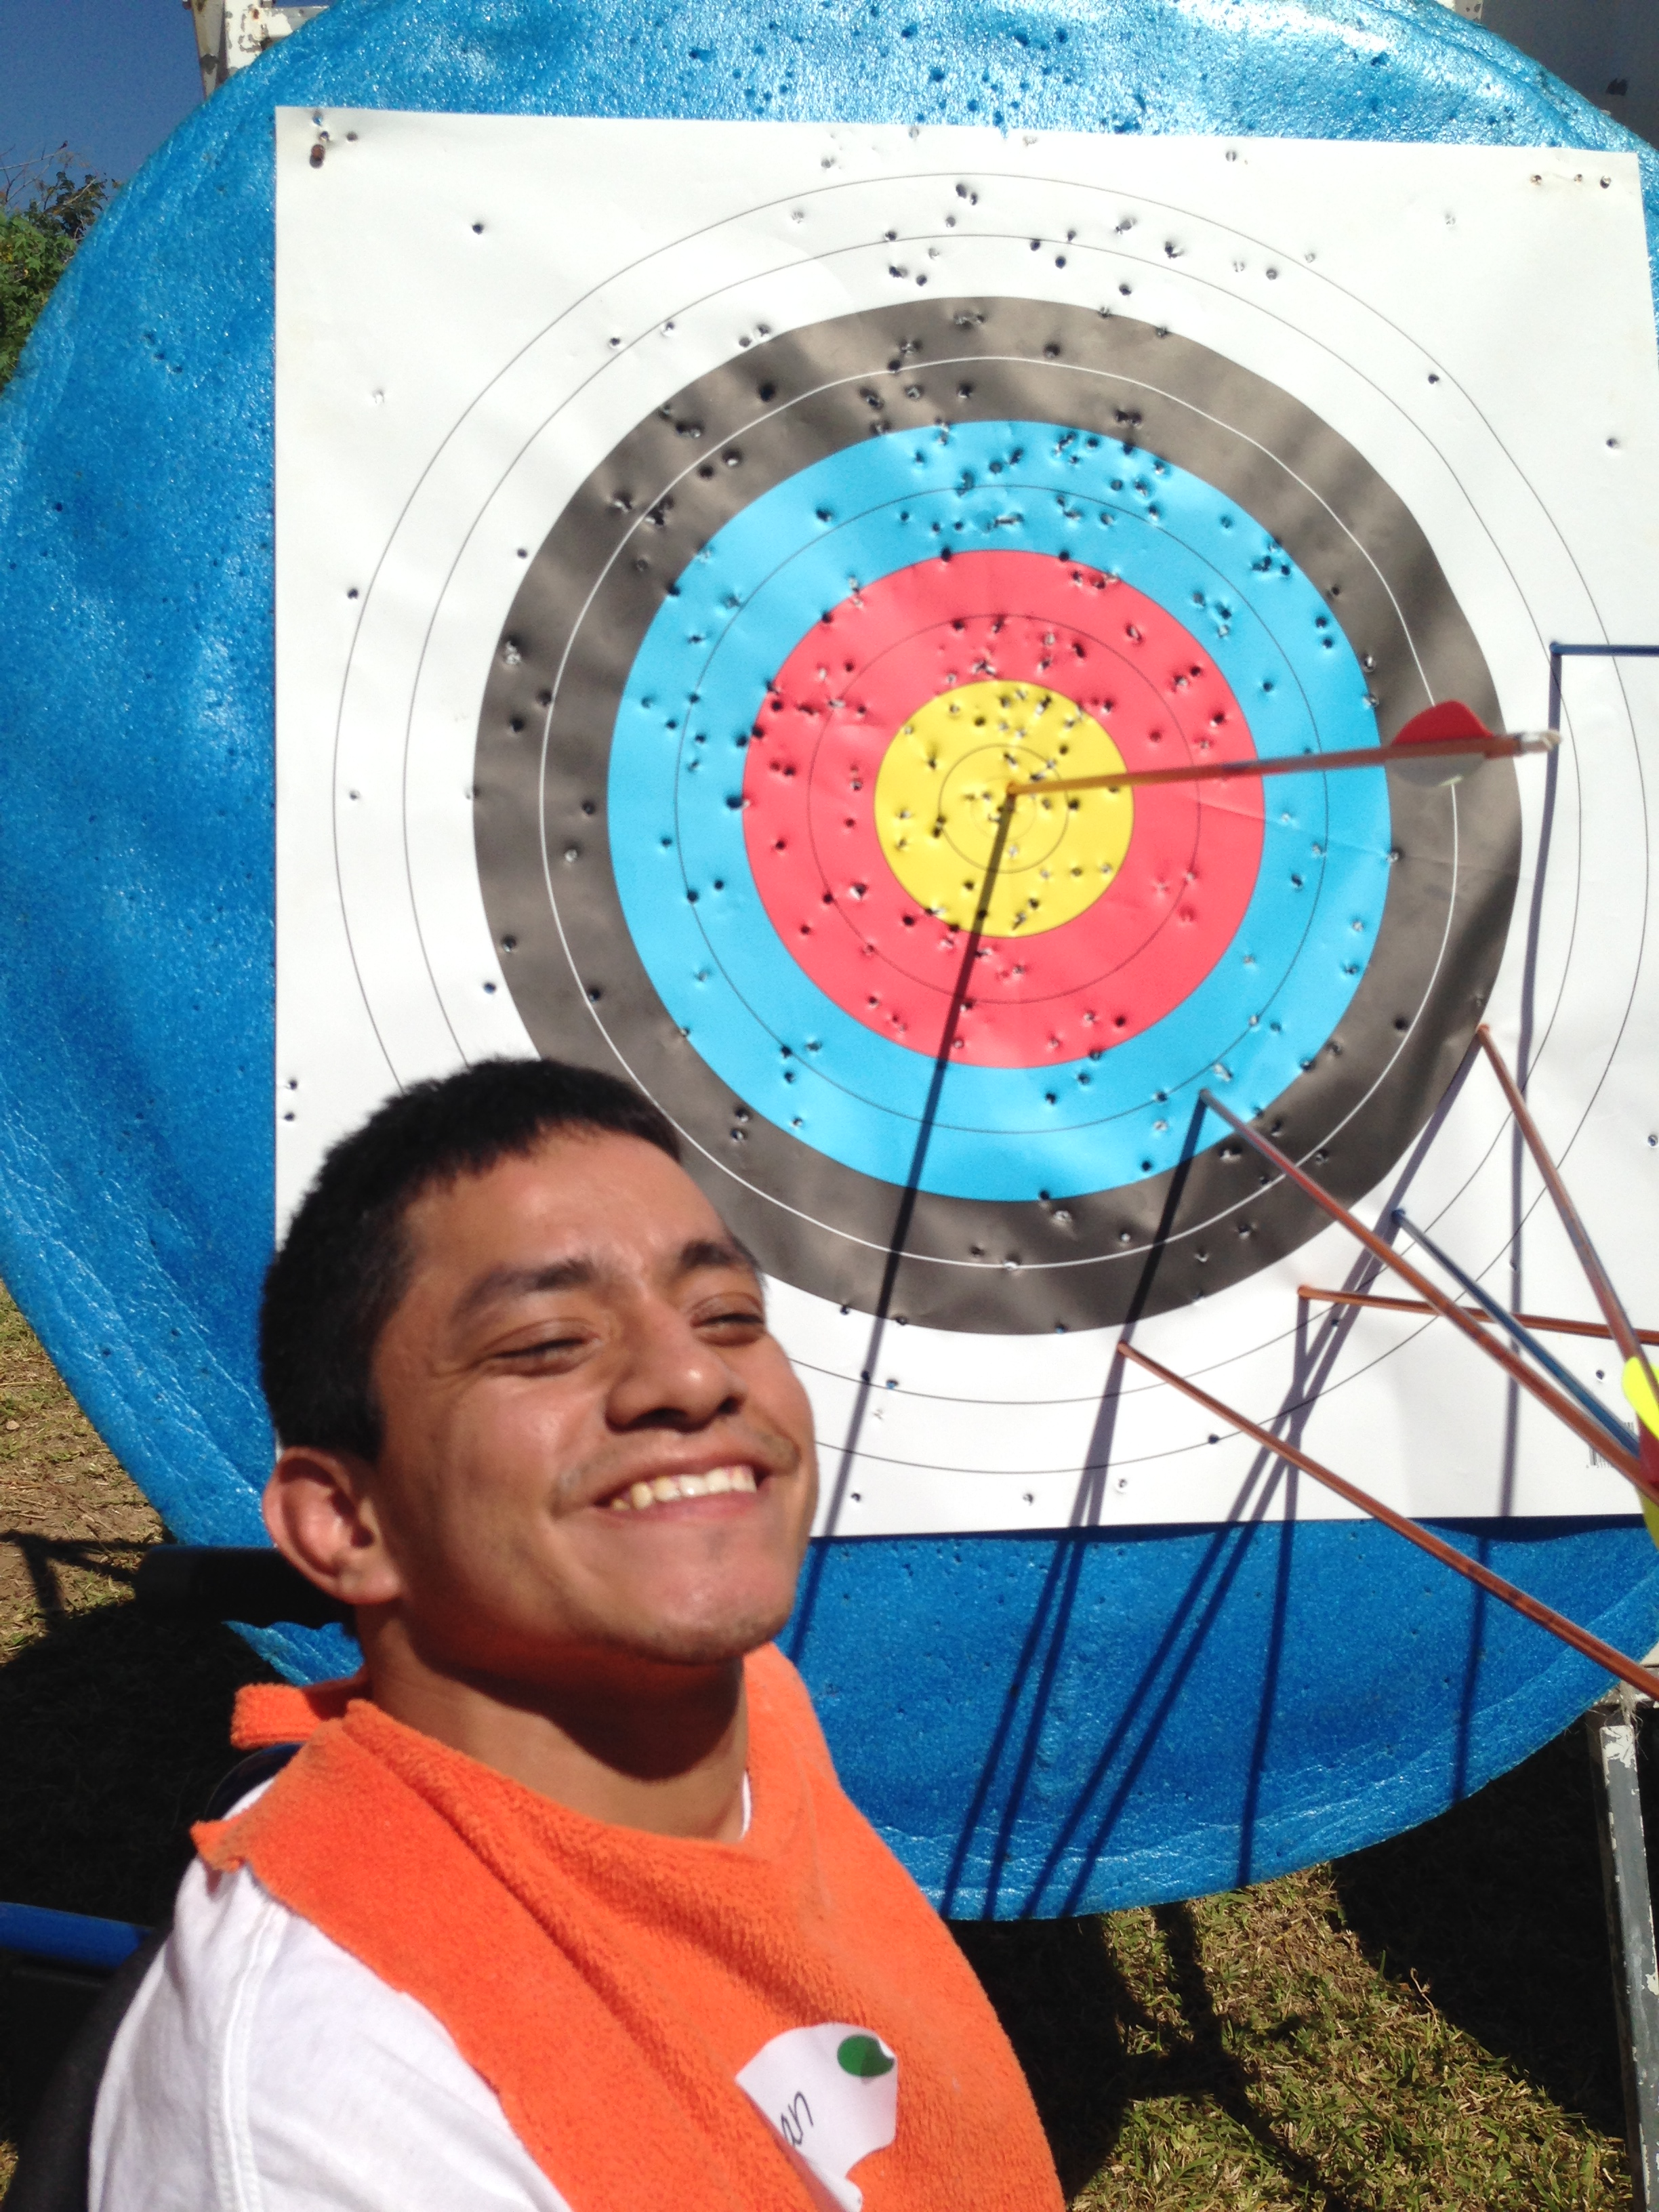 Juan poses by his first-ever bull's-eye during an archery session